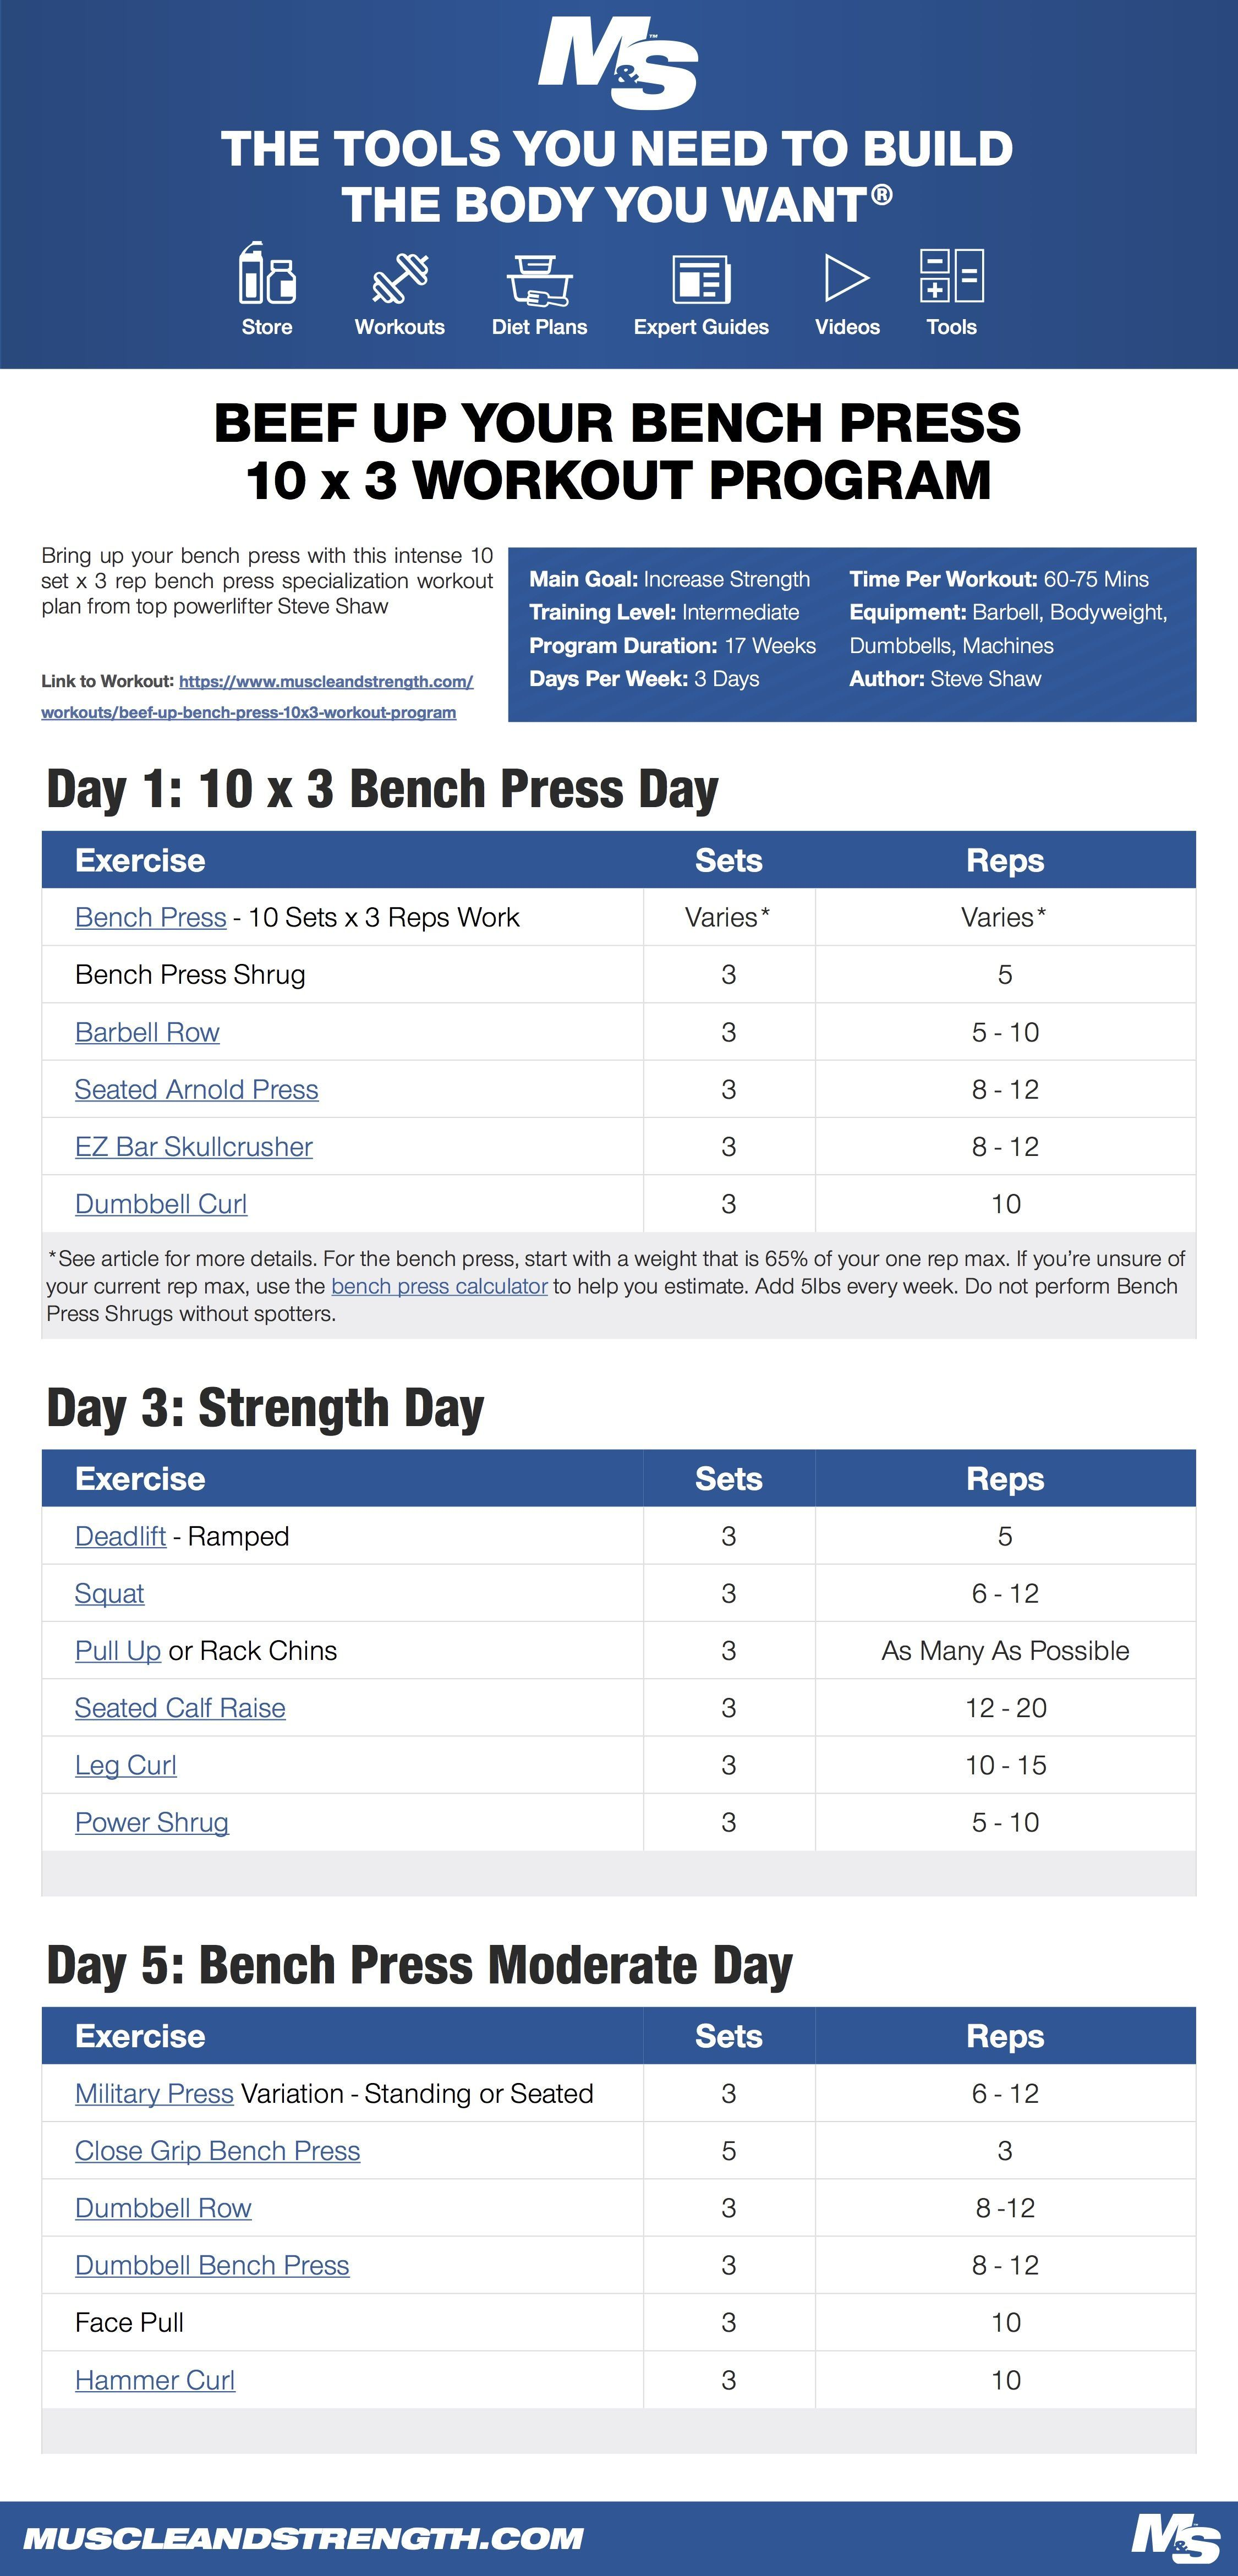 Click Through To Download Pdf Bring Up Your Bench Press With This Intense 10 Set X 3 Rep Bench Pres Dumbbell Only Workout Dumbbell Workout Full Body Workout